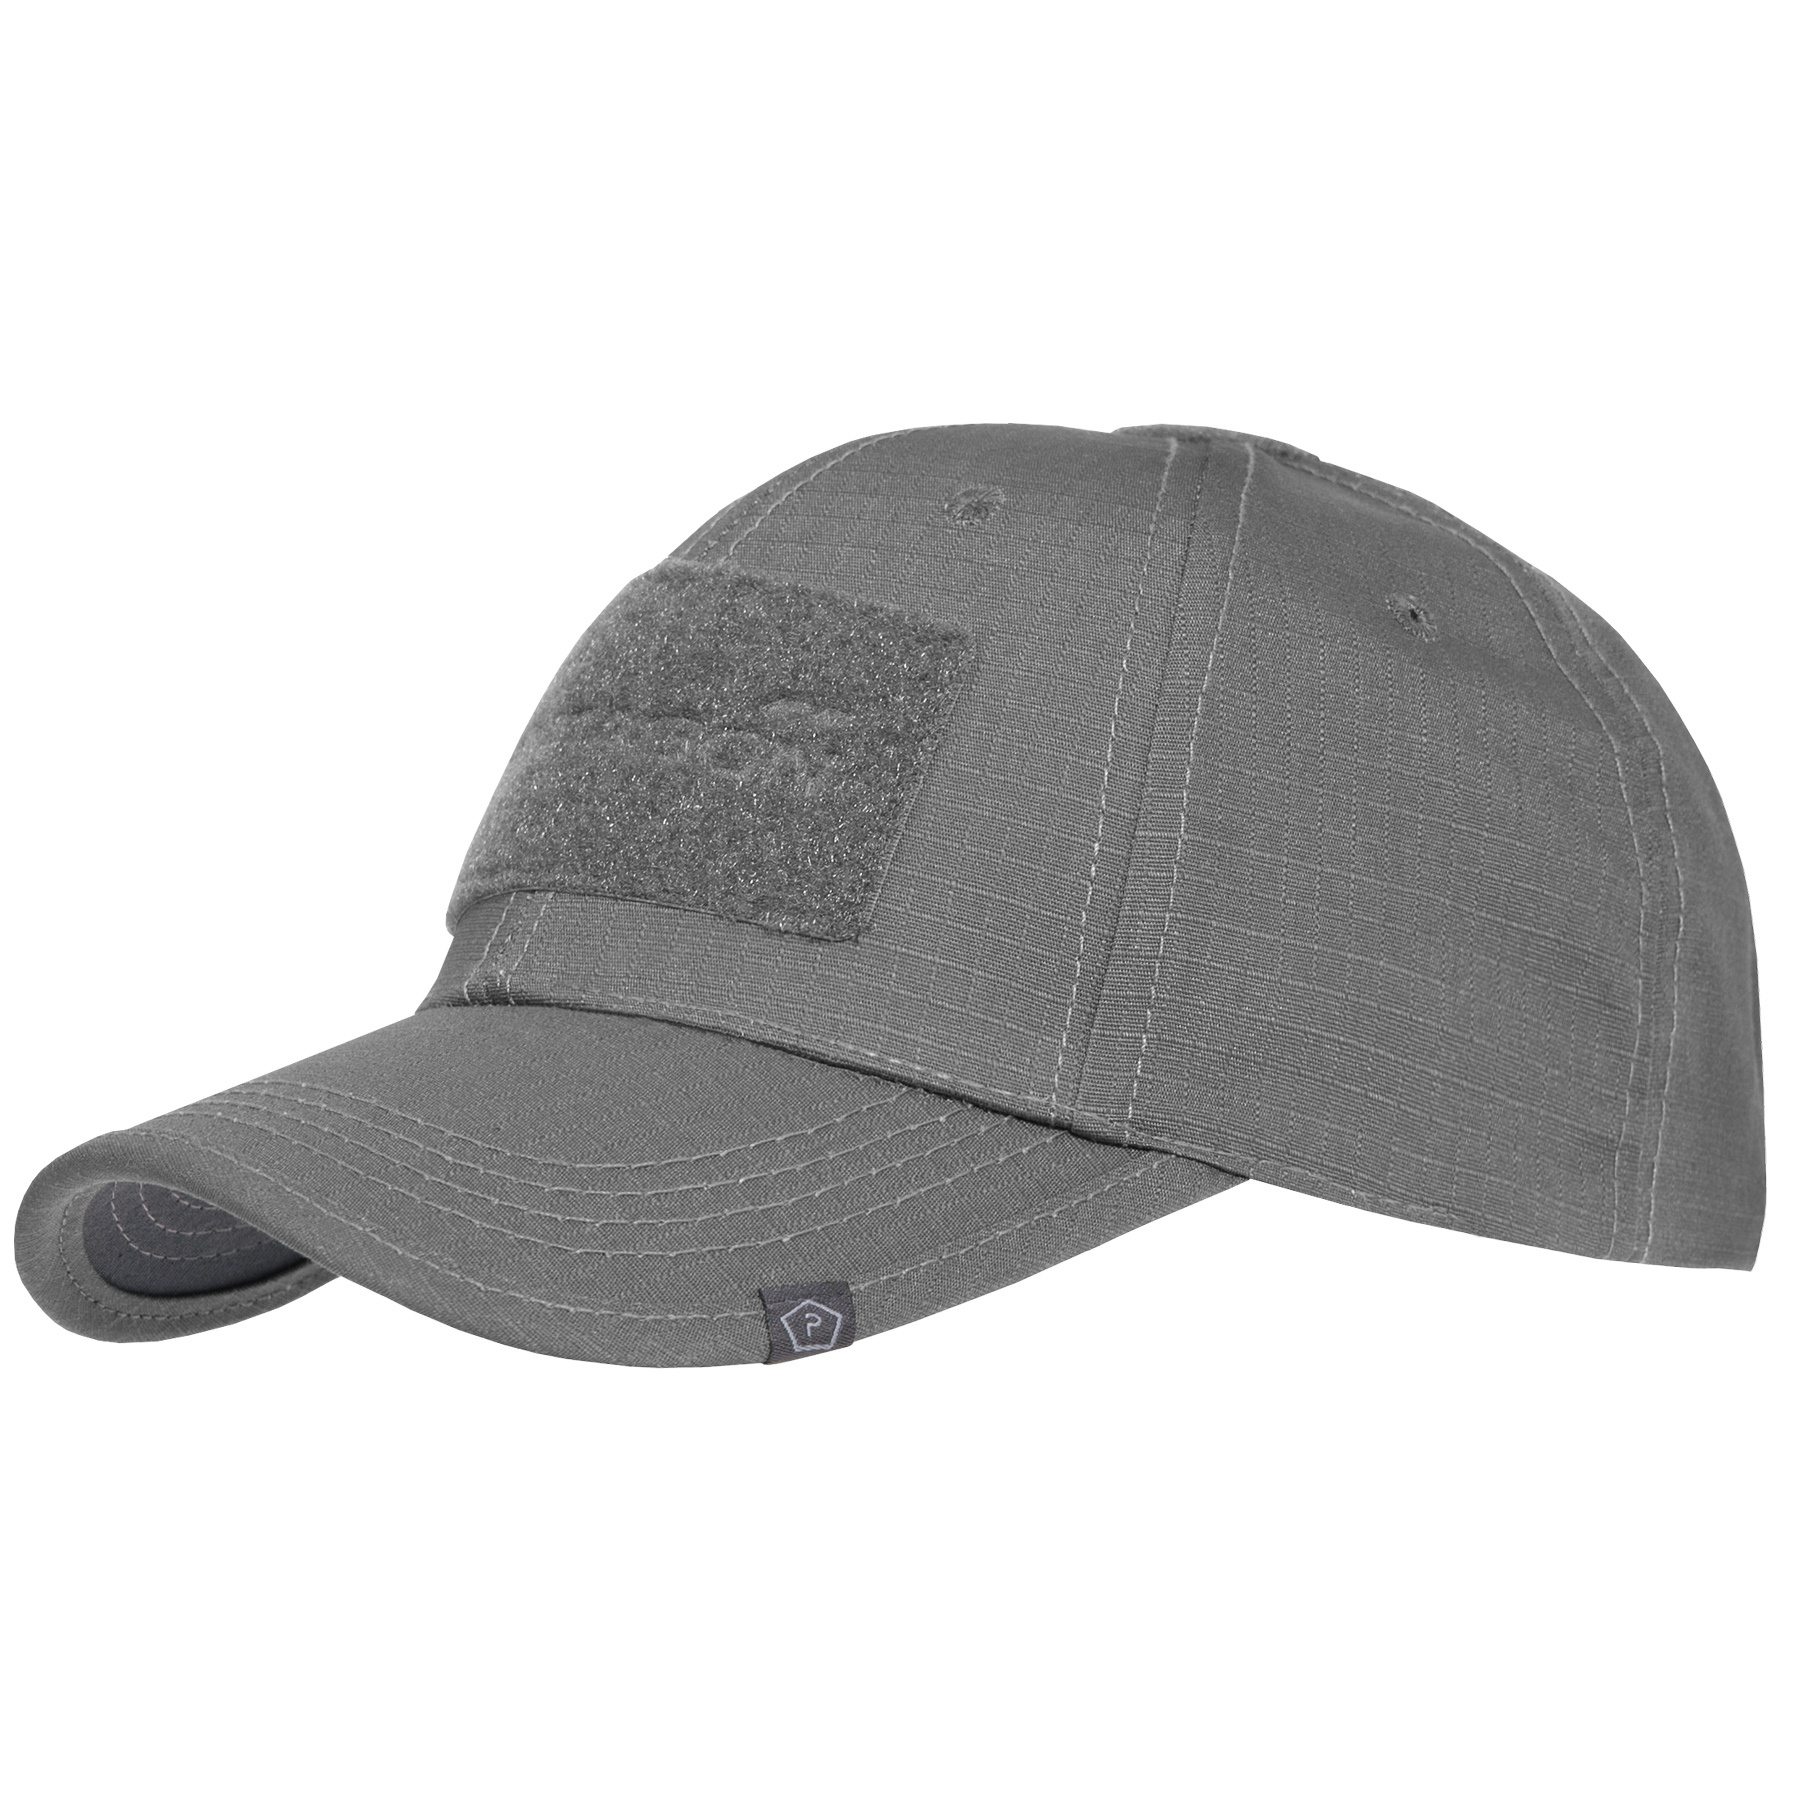 Pentagon Baseball Cap TACTICAL 2.0